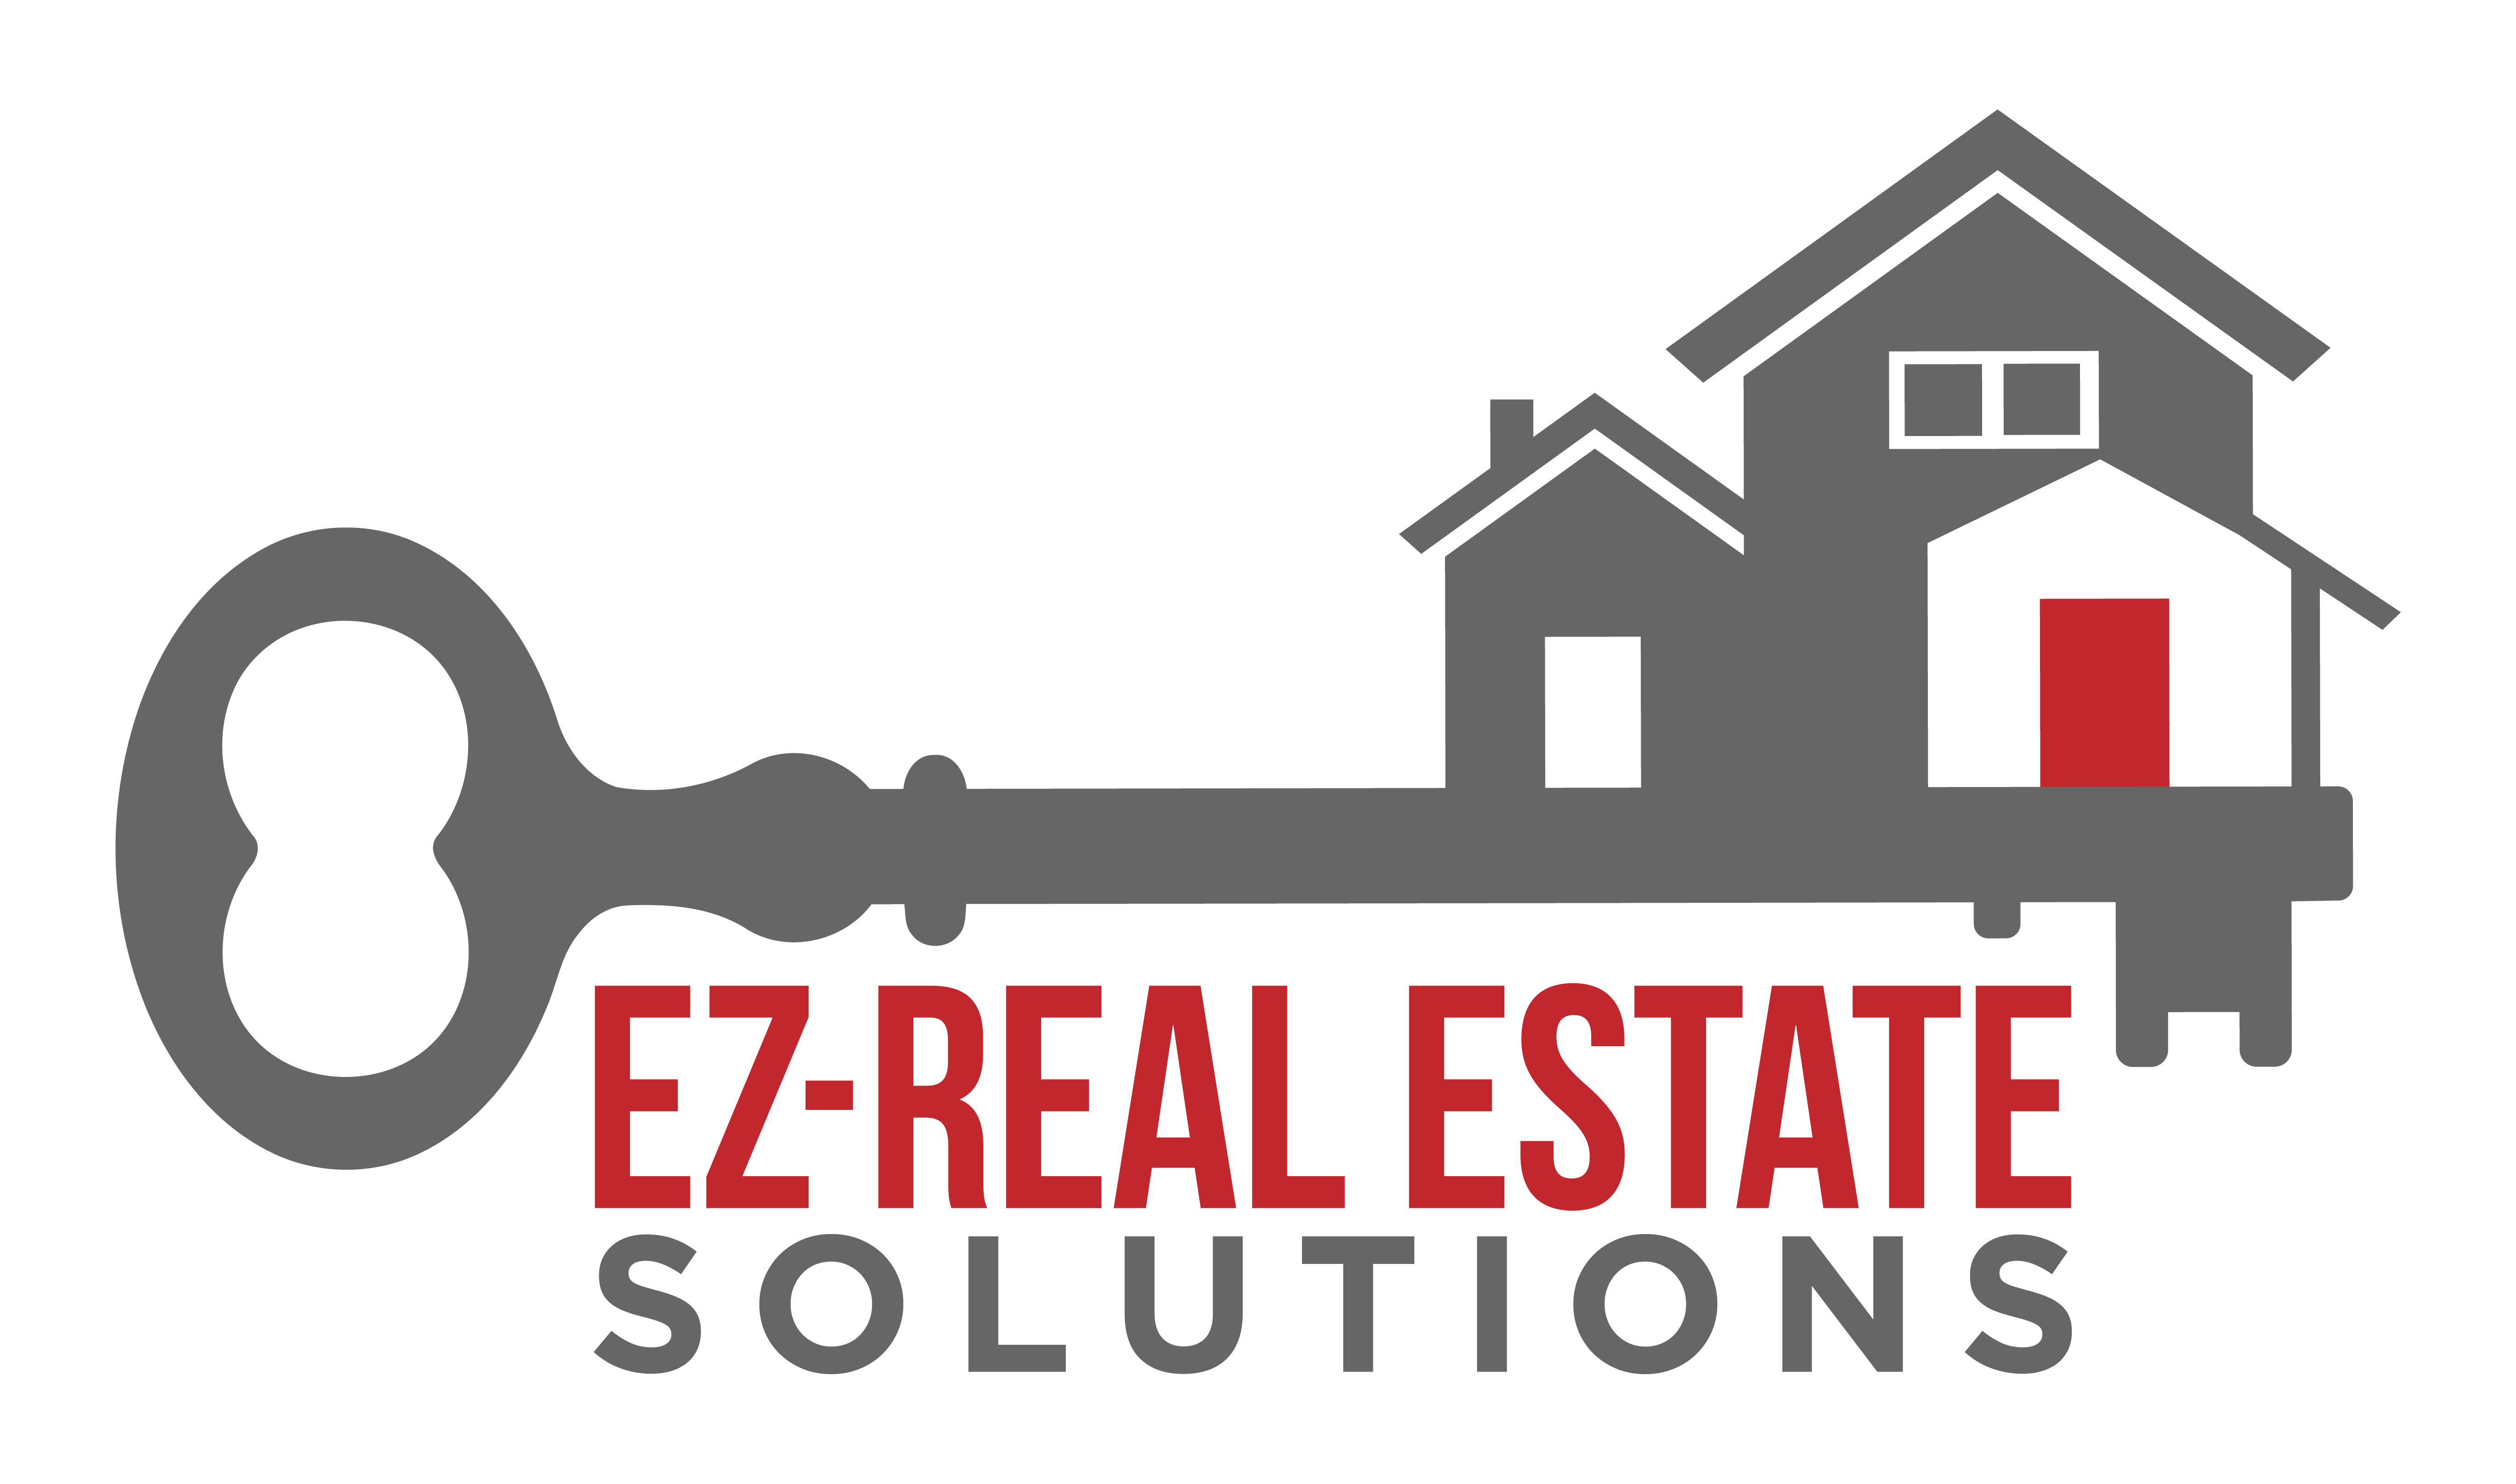 EZ-Real Estate Solutions